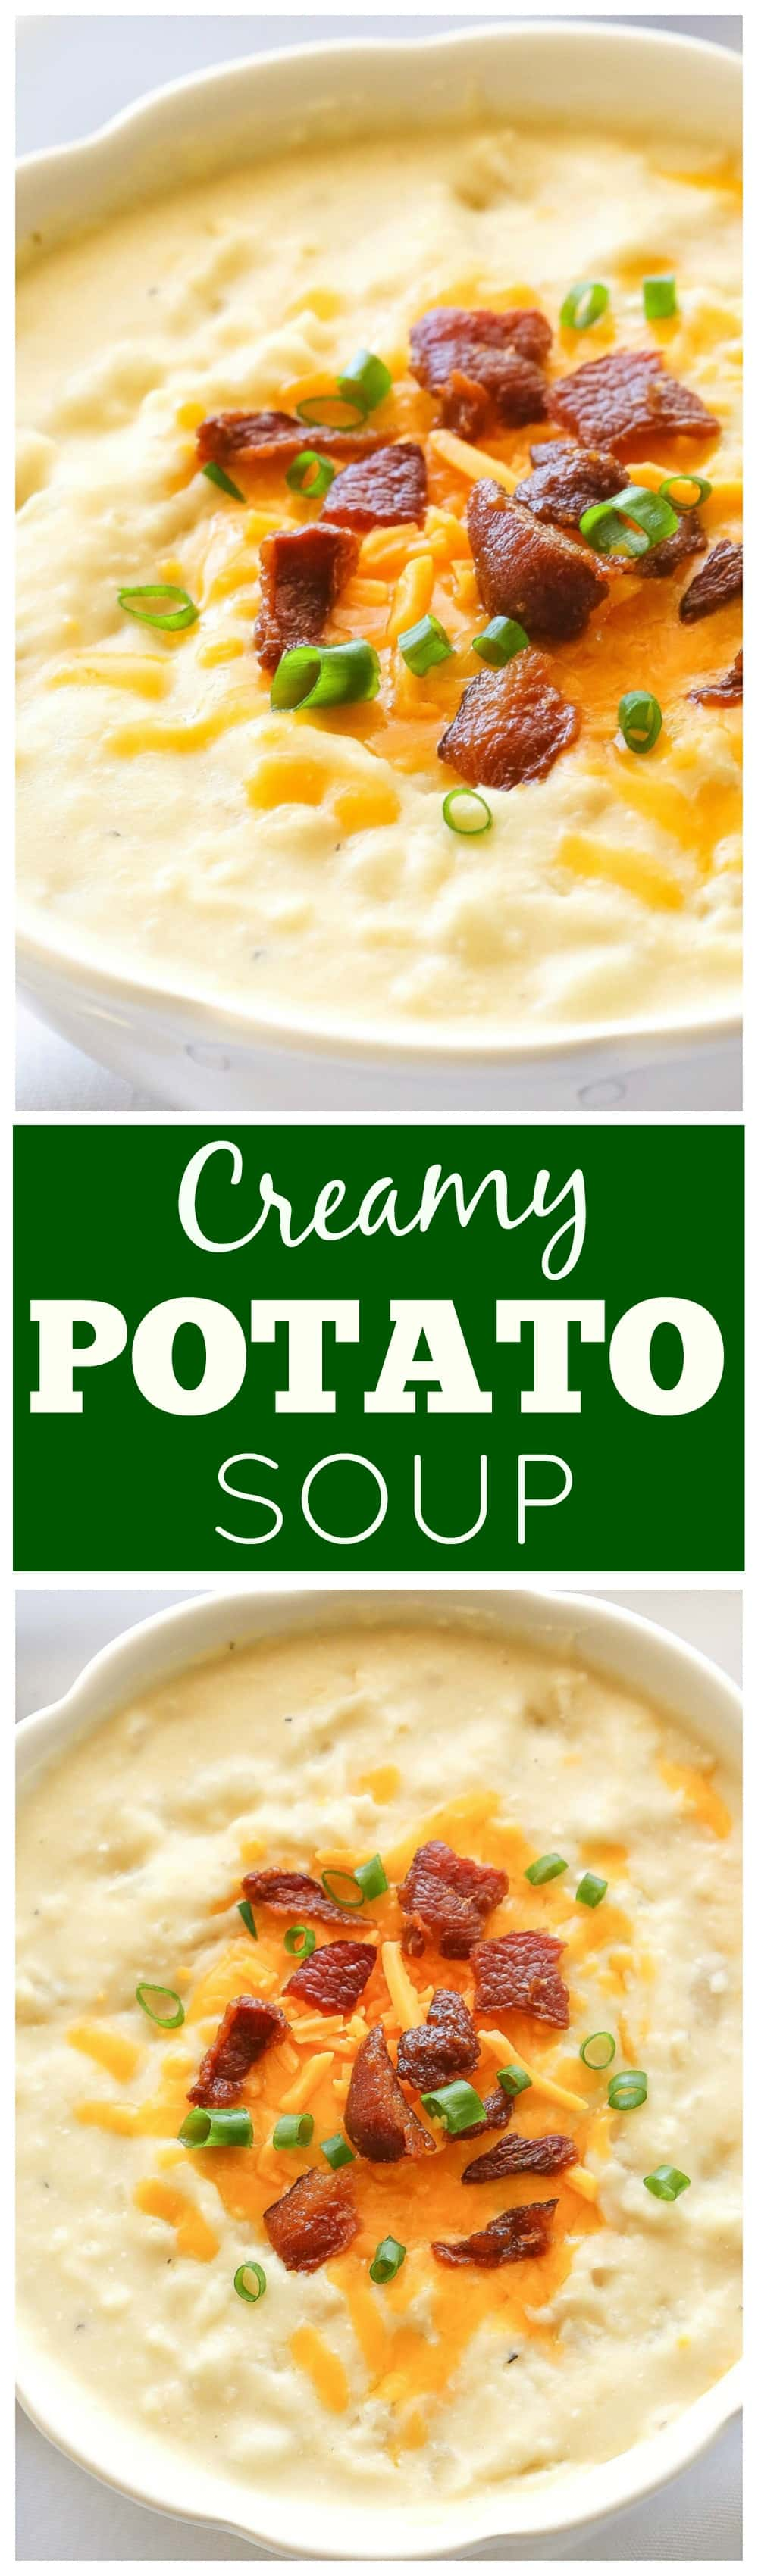 Creamy Potato Soup - a slow cooker soup that is so easy! the-girl-who-ate-everything.com